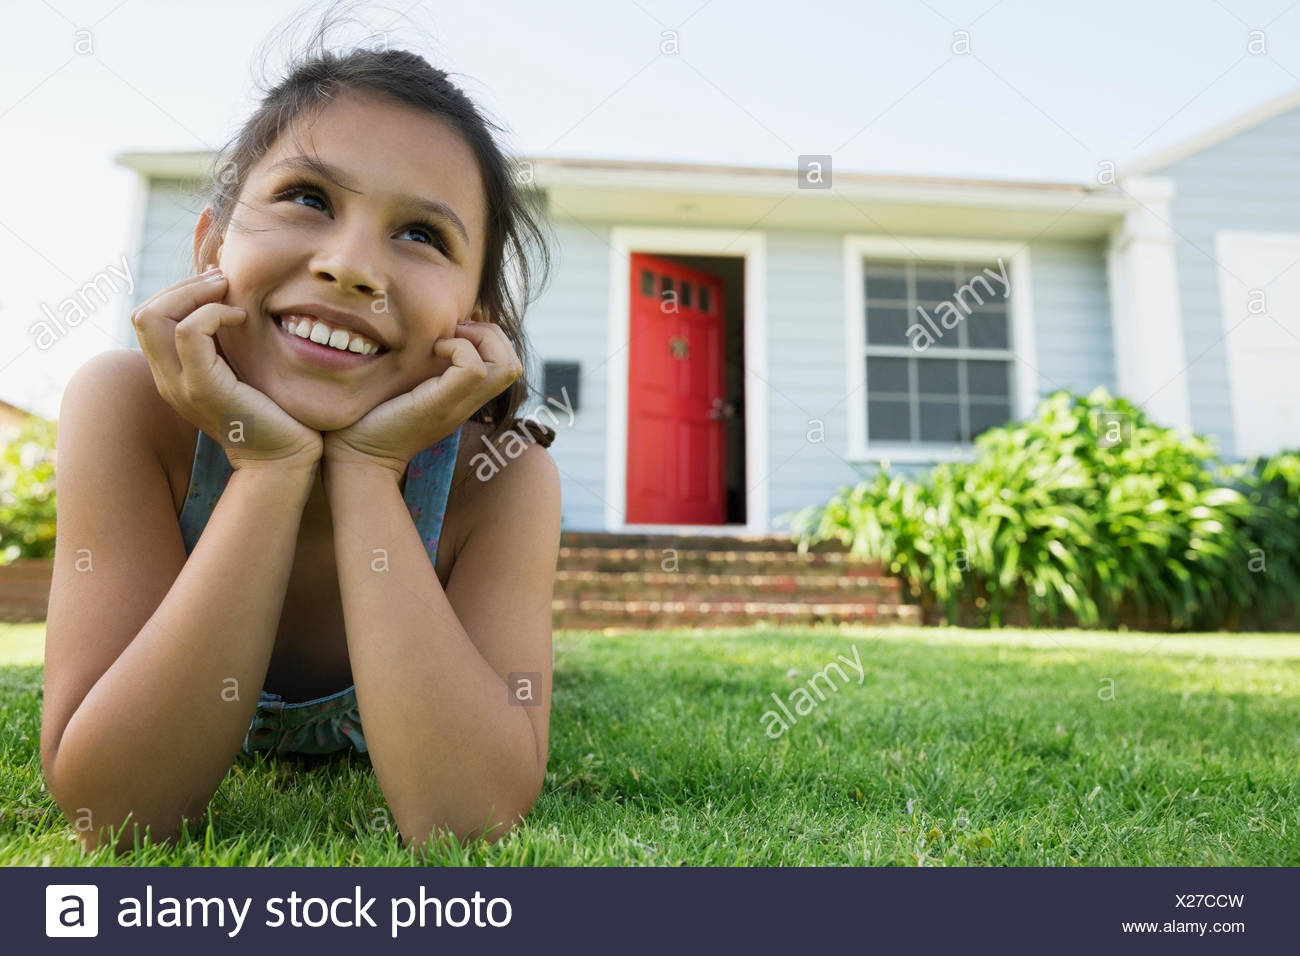 Smiling girl laying in grass in front yard - Stock Image